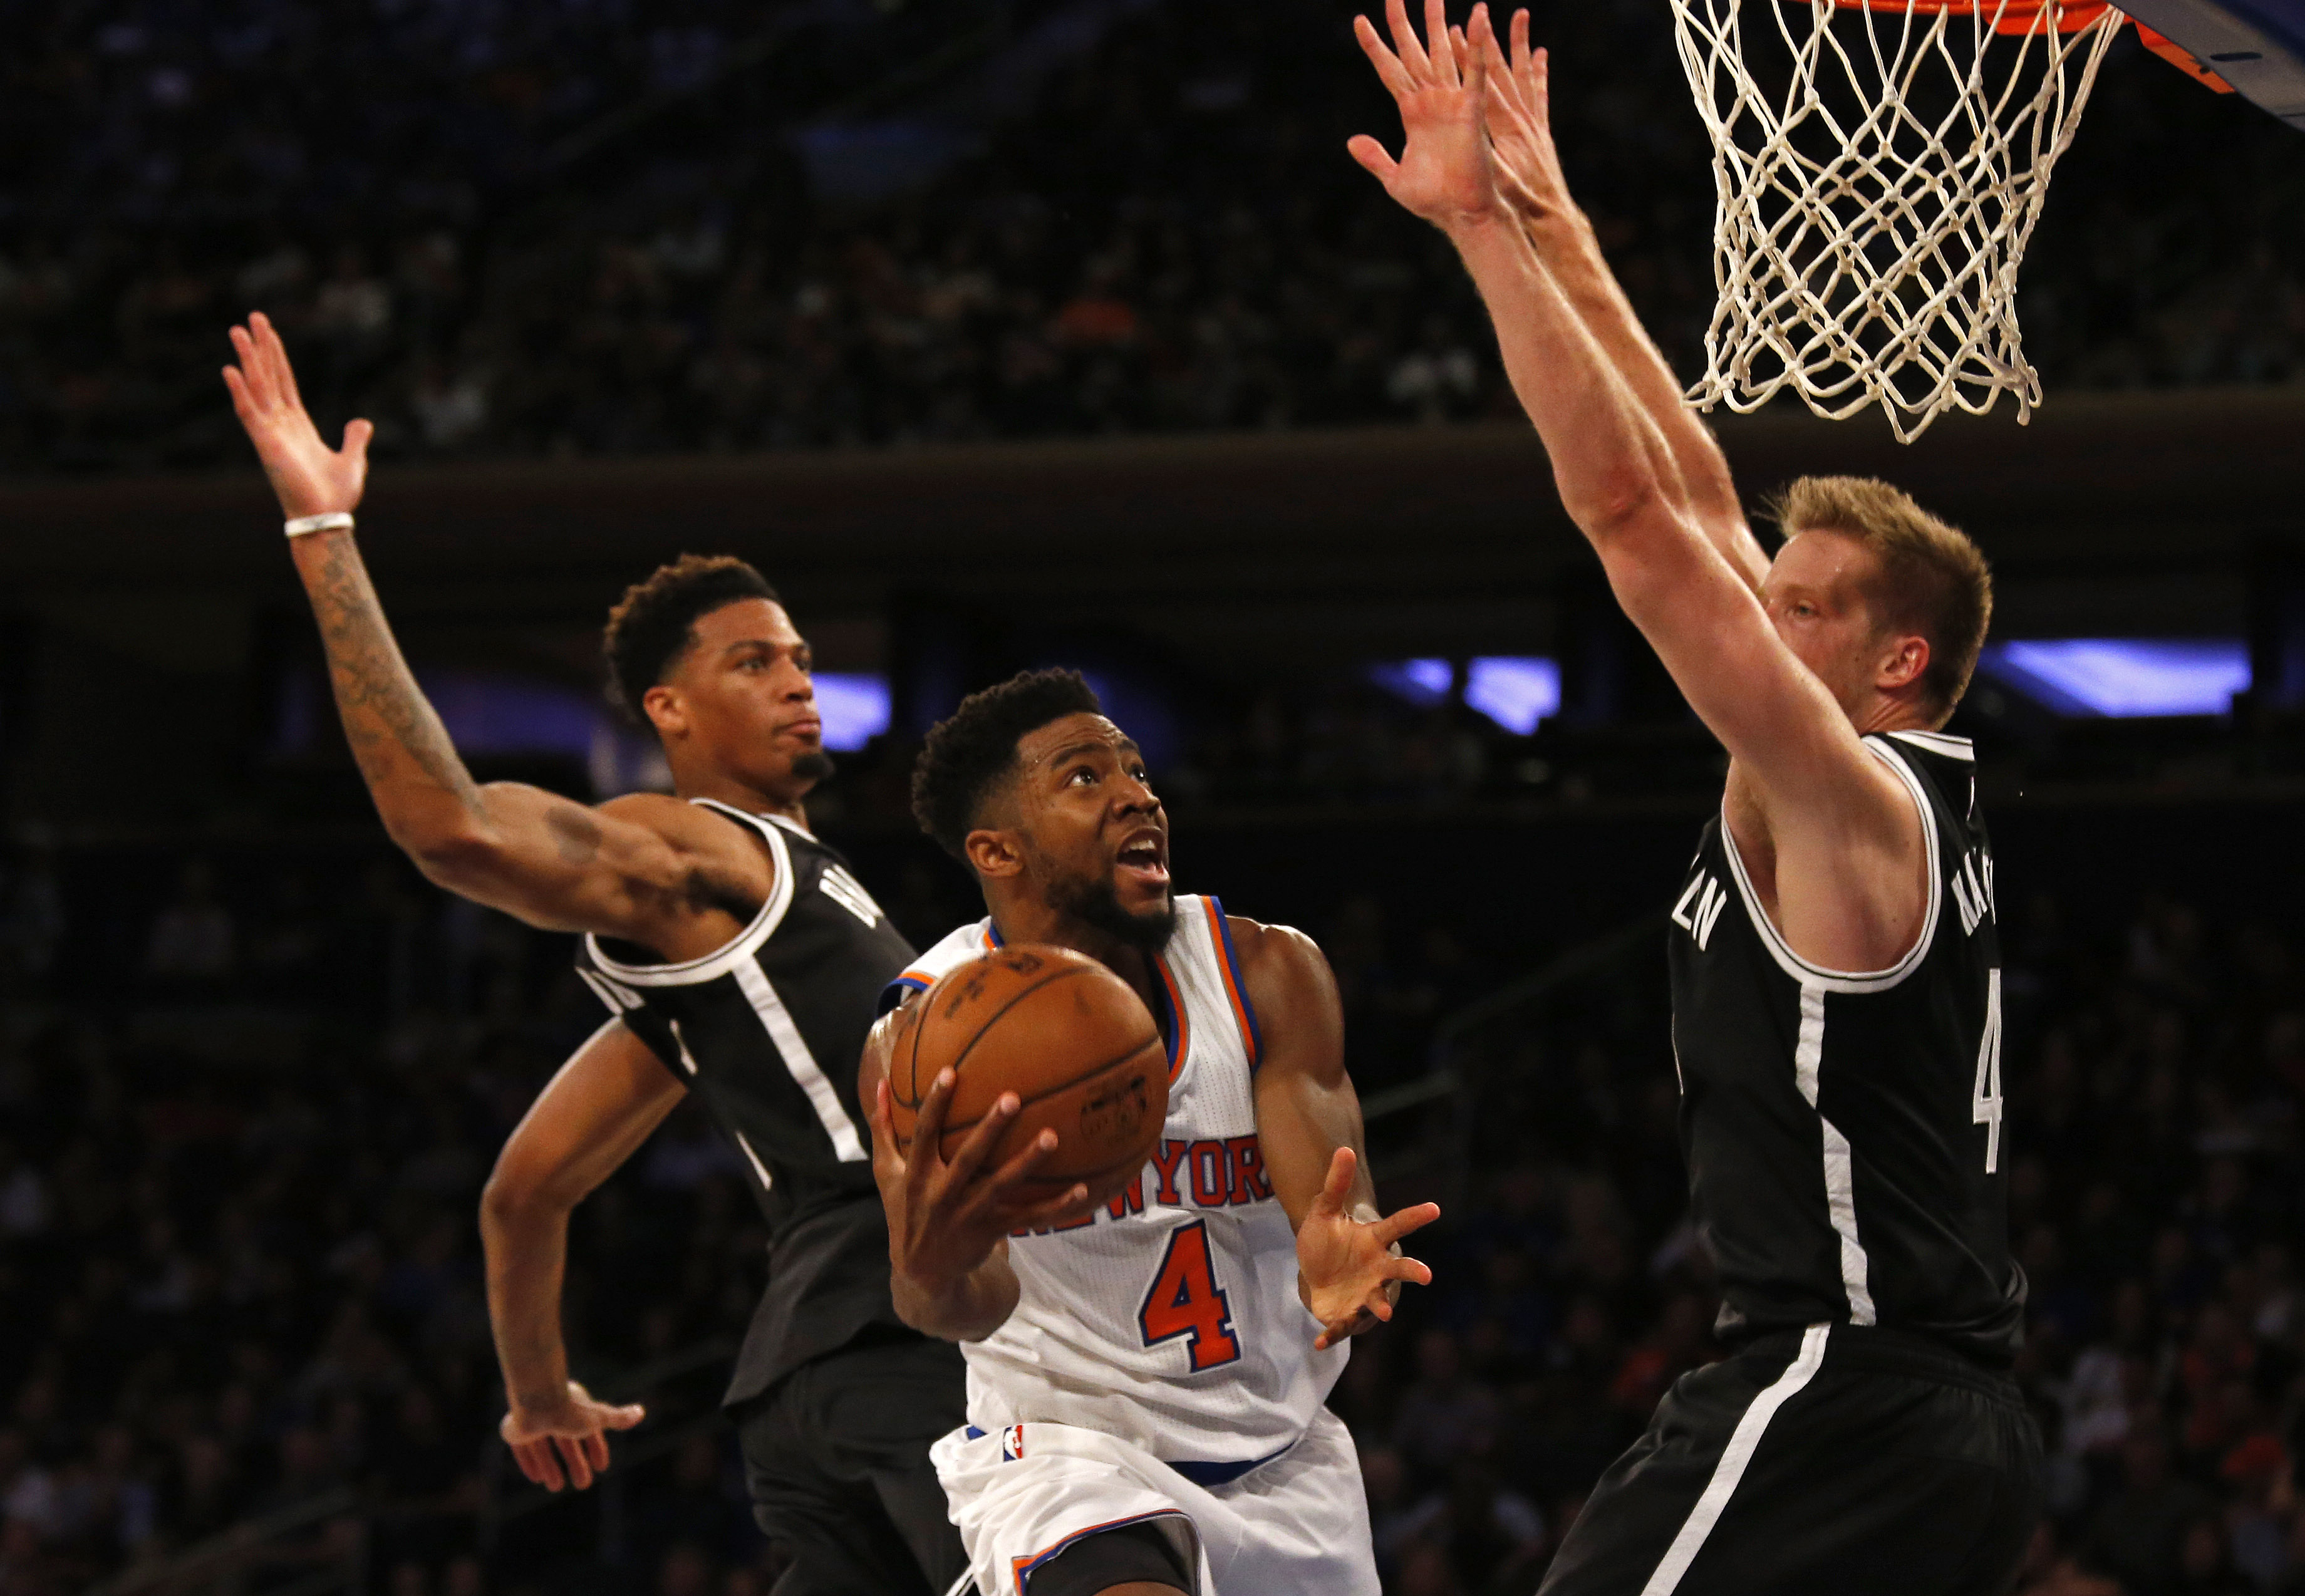 Chasson Randle suffers orbital fracture, still has shot at making roster